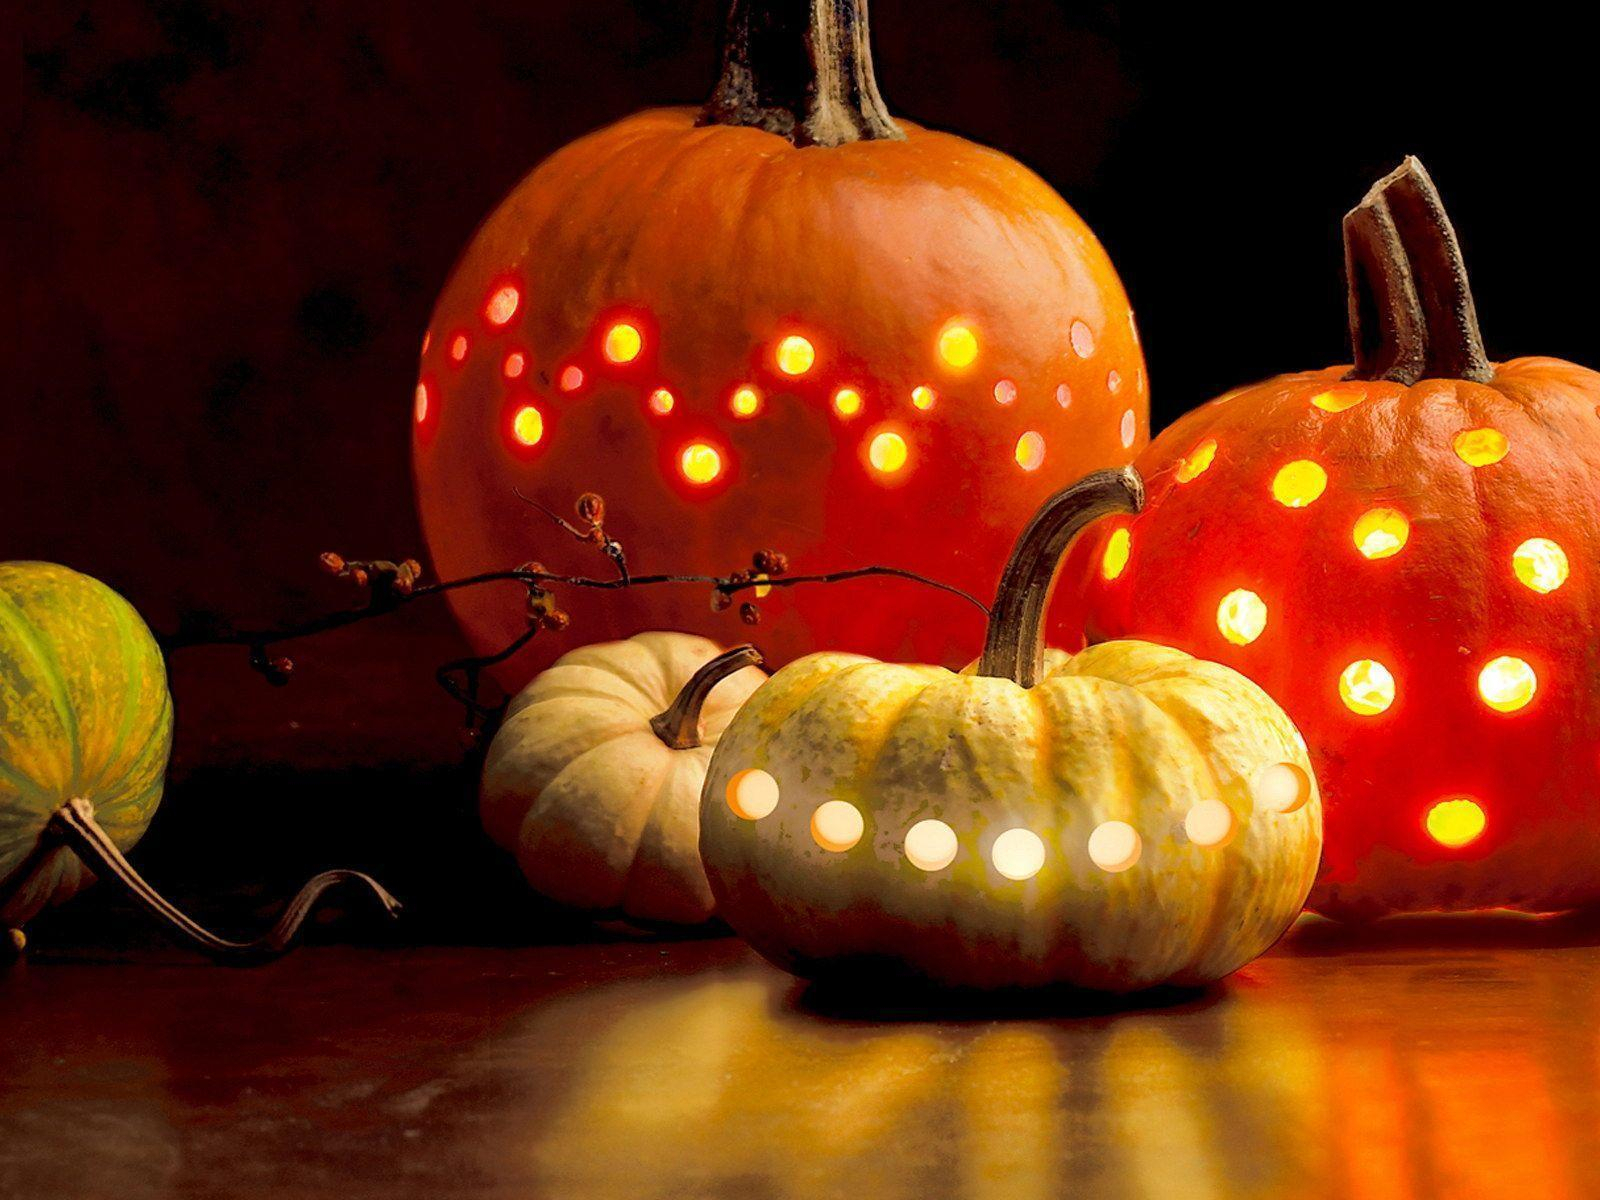 free pumpkin wallpaper backgrounds - wallpaper cave